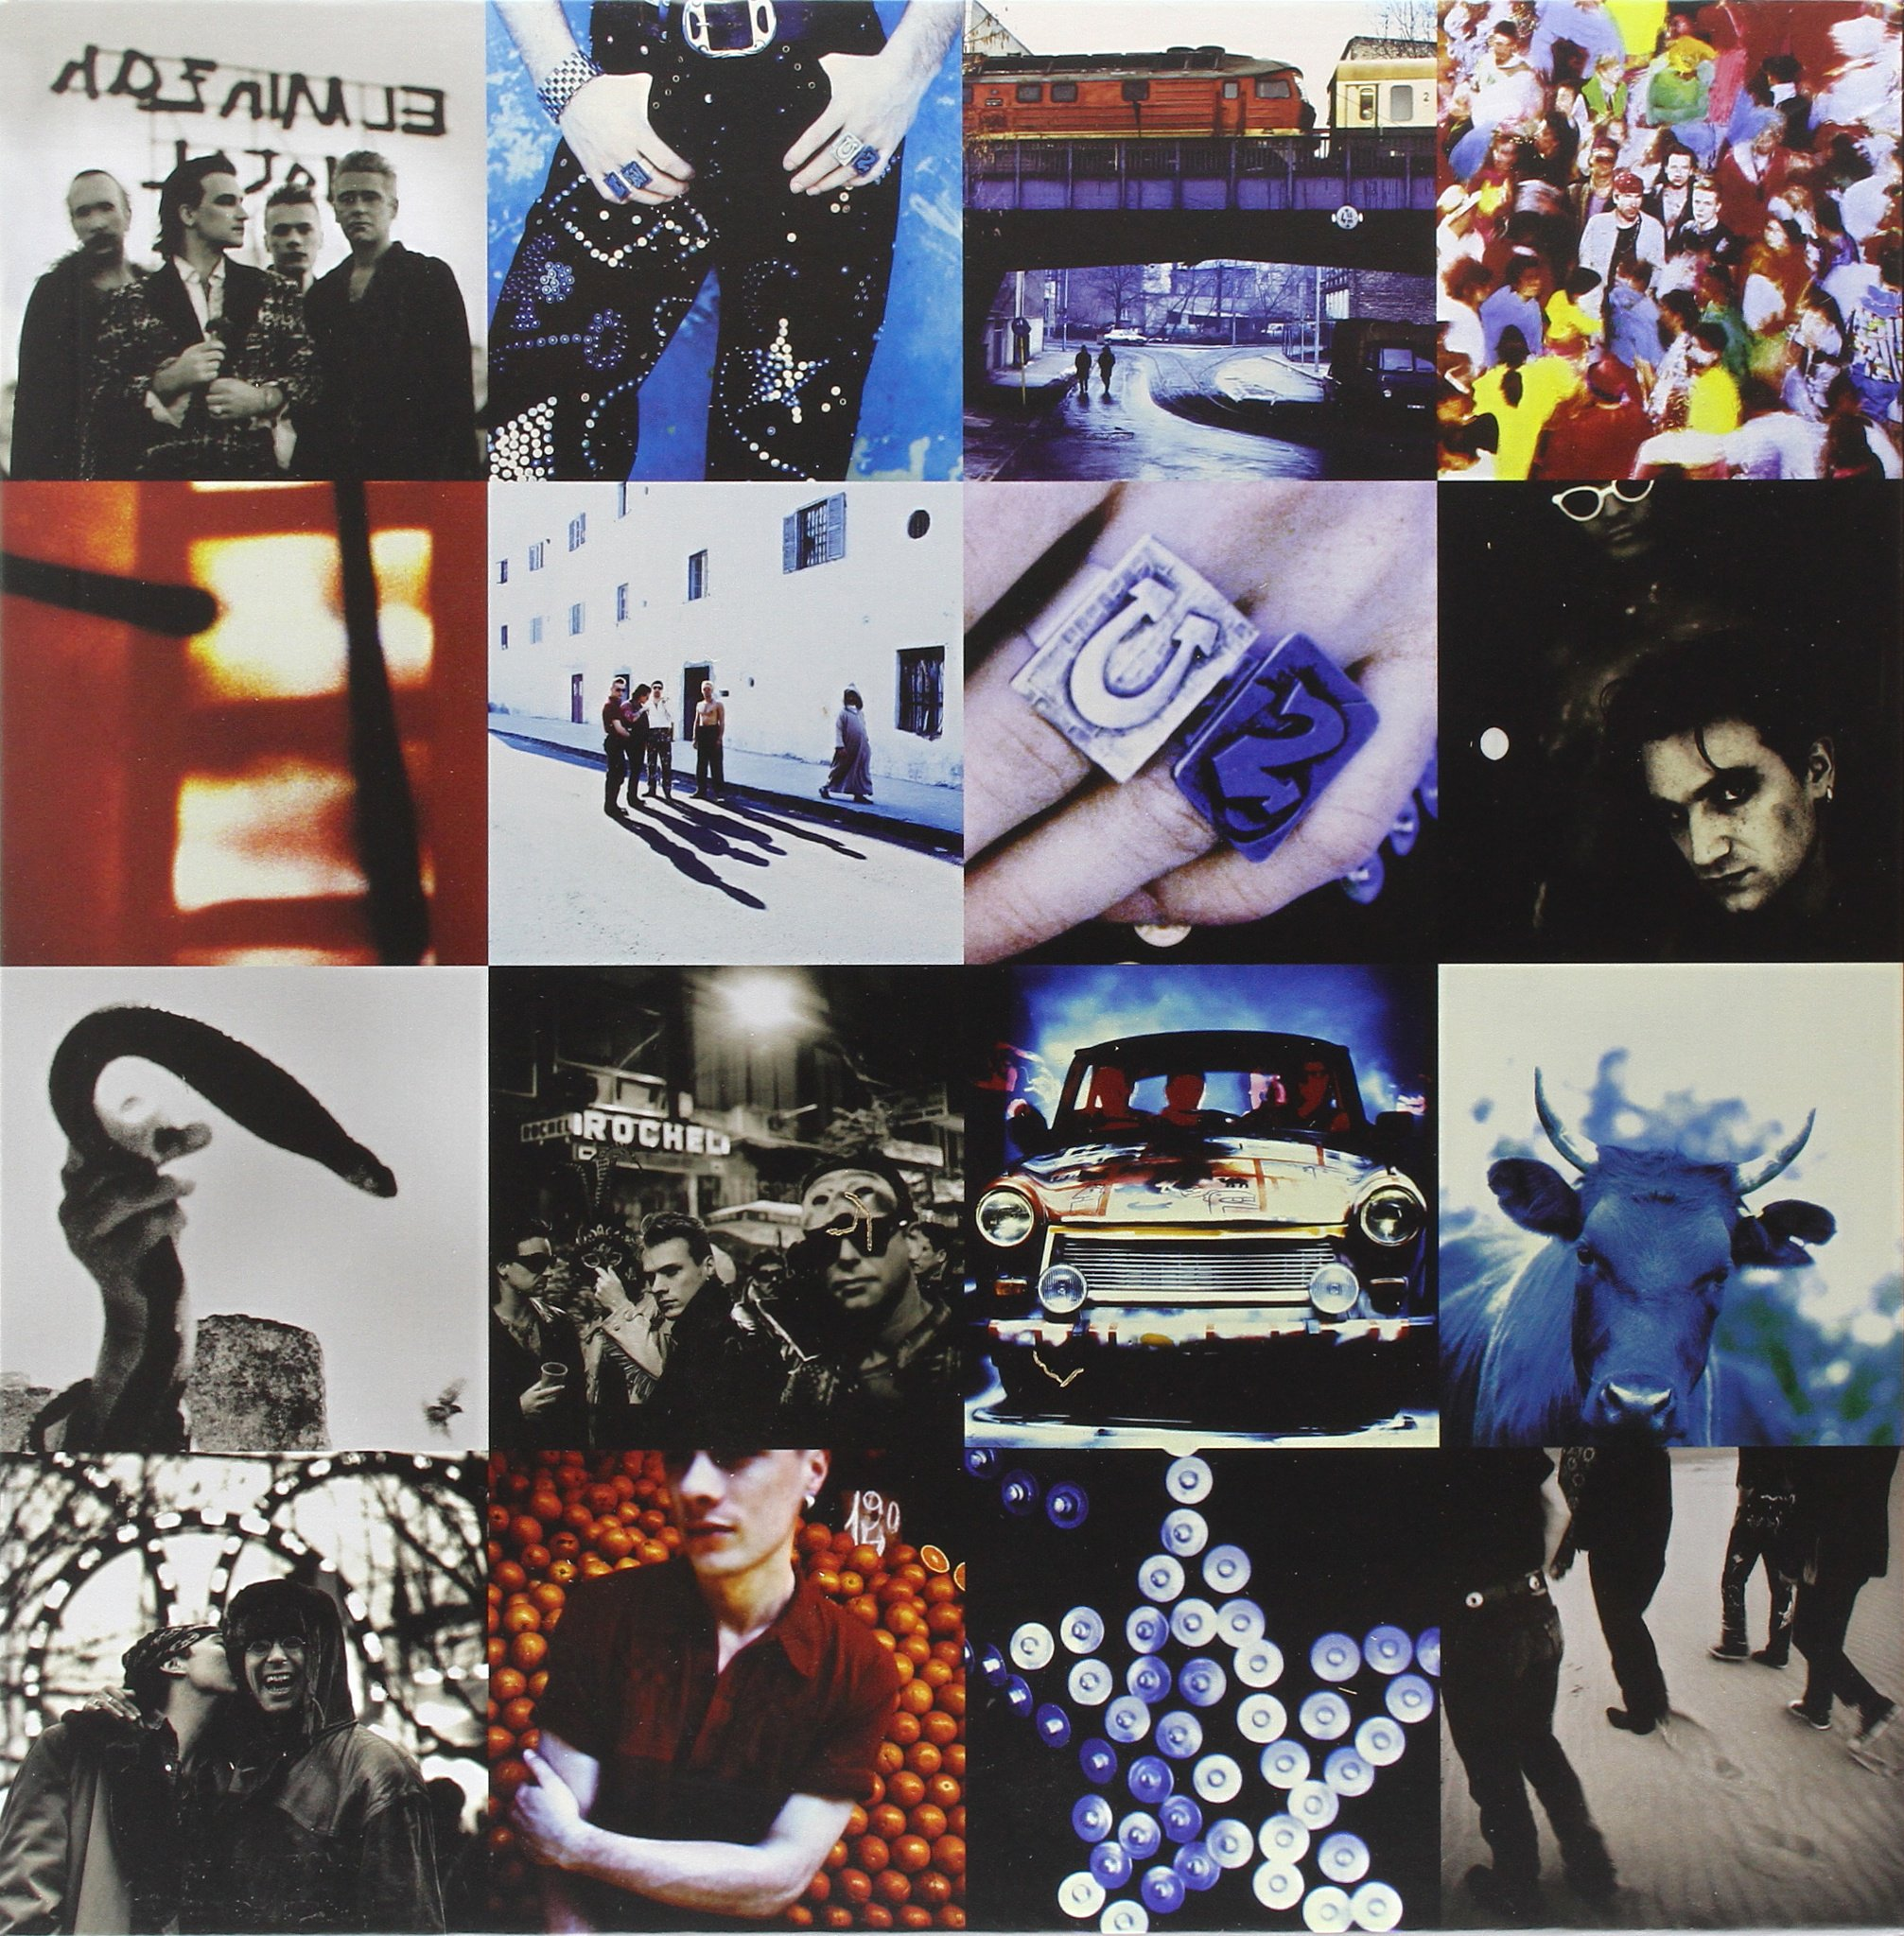 Achtung Baby (Super Deluxe Edition) by CD